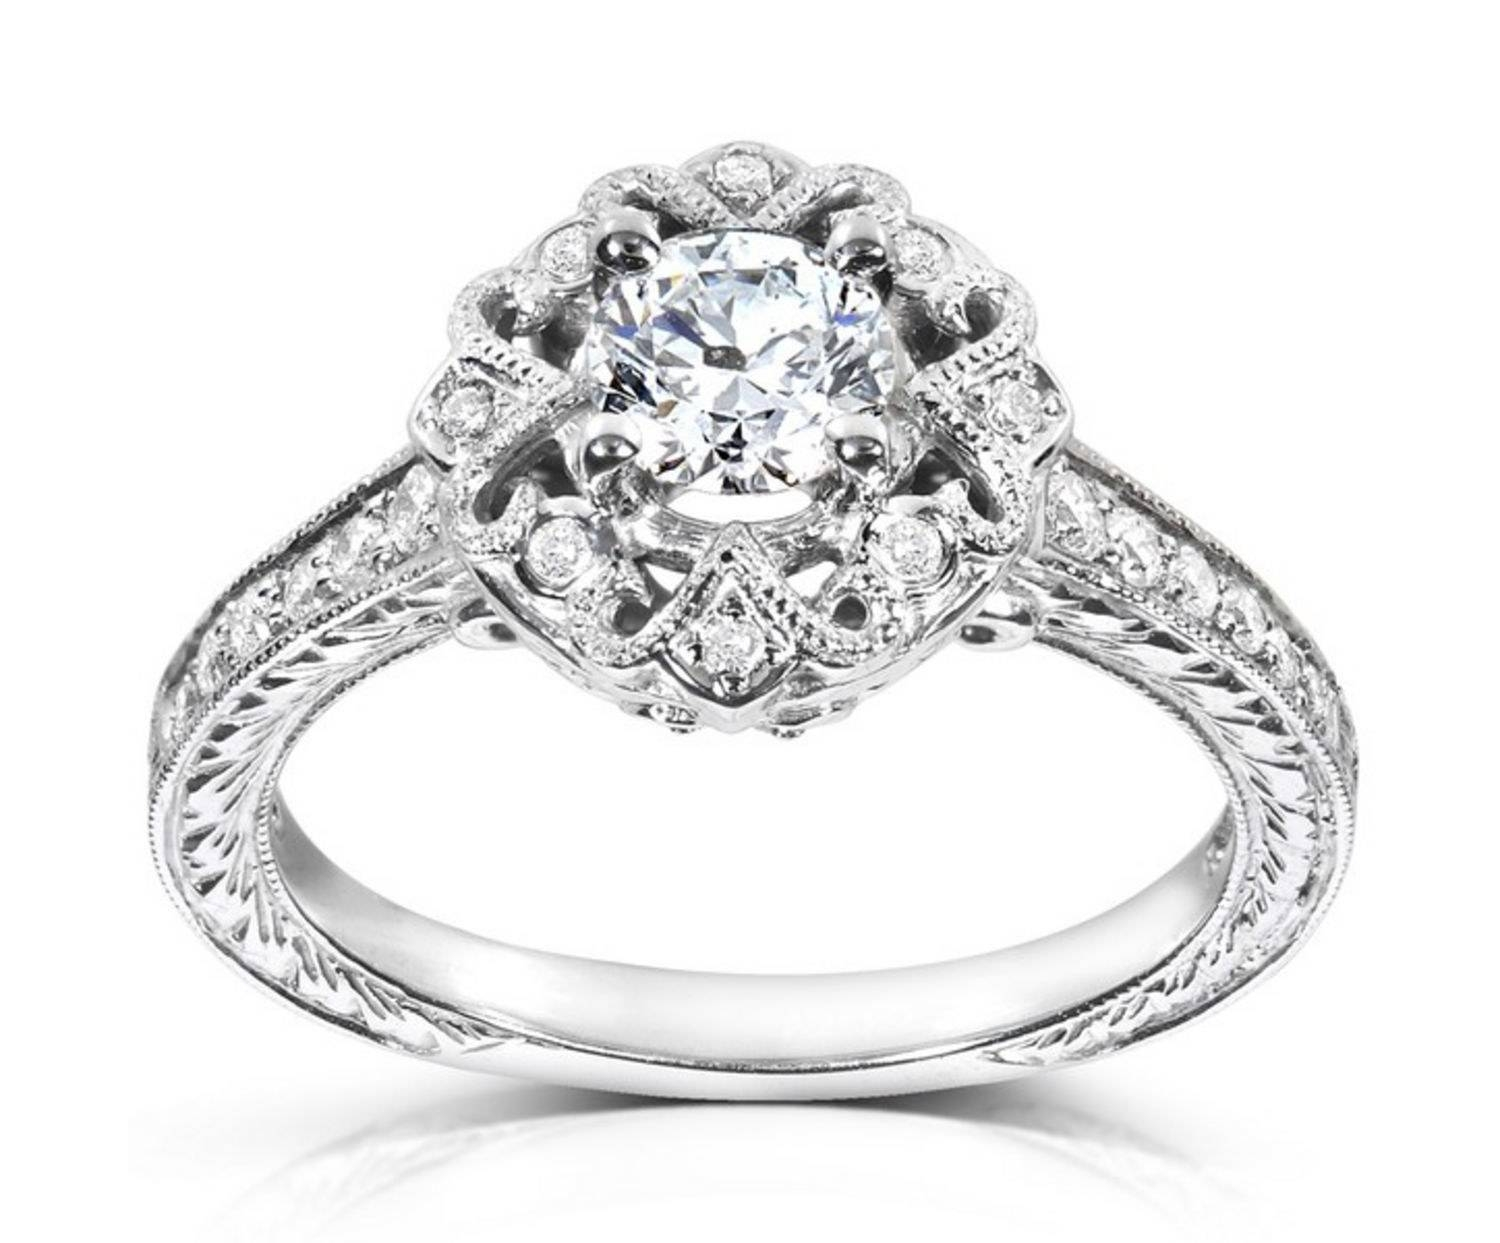 Engagement Rings : Wedding Engagement Rings Stunning Engagement Pertaining To Wedding Engagement Rings (Gallery 11 of 15)